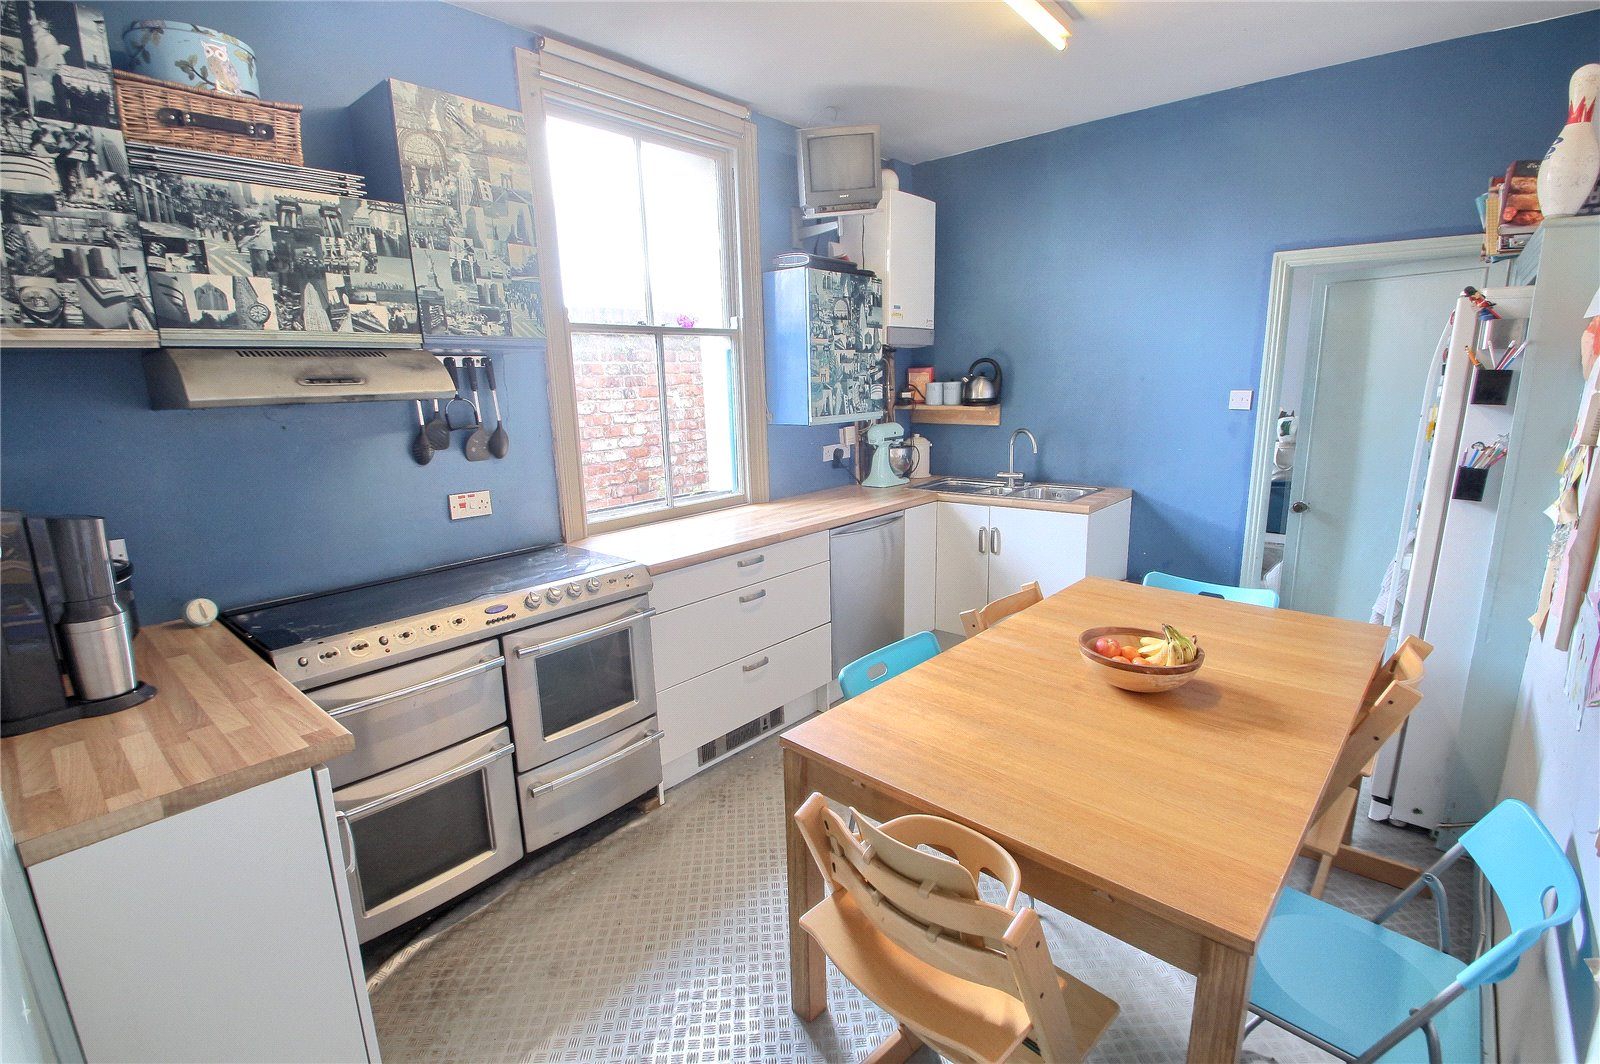 5 bed house for sale in Varo Terrace, Stockton-on-Tees  - Property Image 6